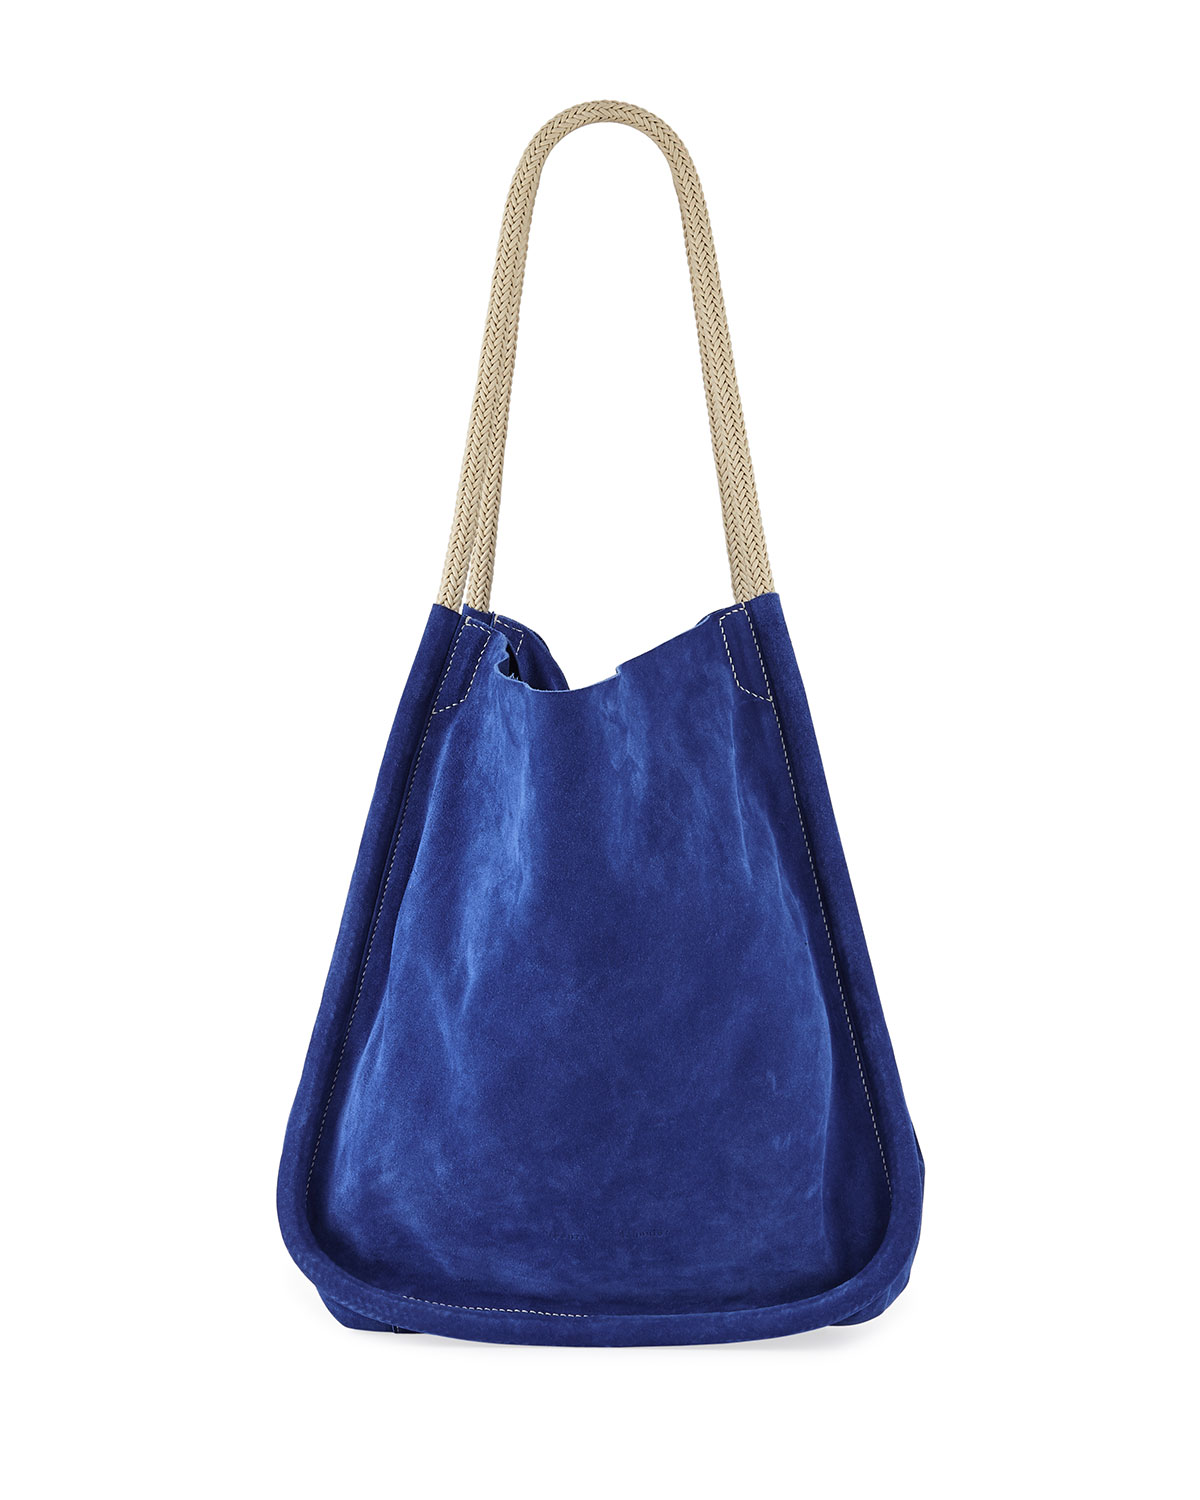 Extra Large Suede Tote Bag With Rope Handles in Bright Blue